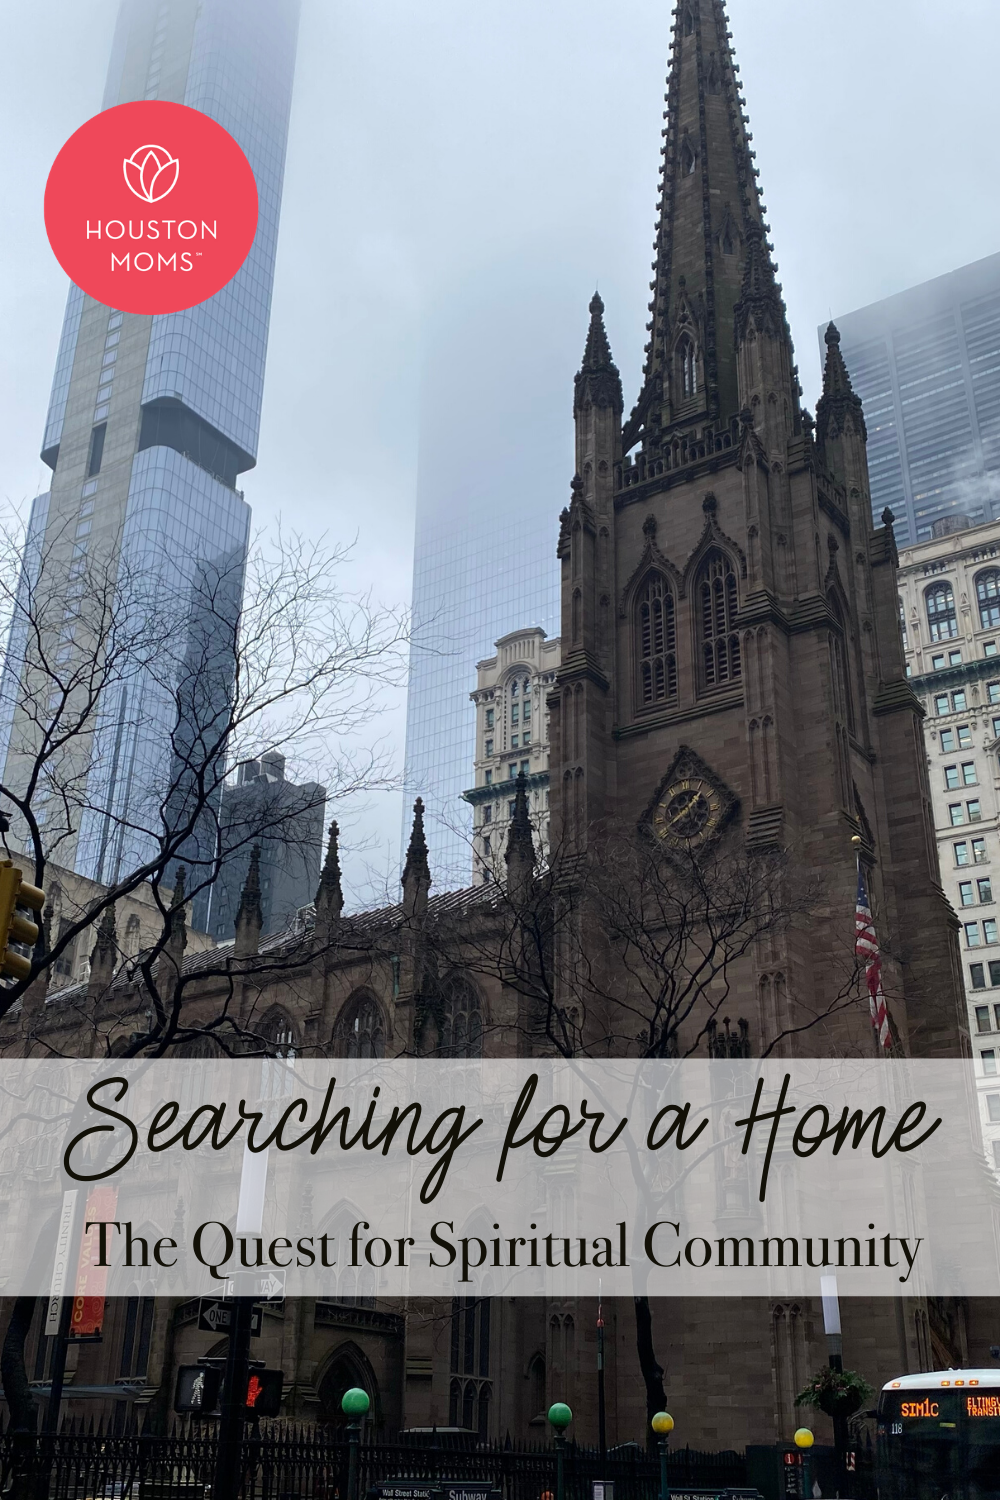 "Houston Moms ""Searching for a Home:: The Quest for Spiritual Community"" #houstonmoms #houstonmomsblog #momsaroundhouston"